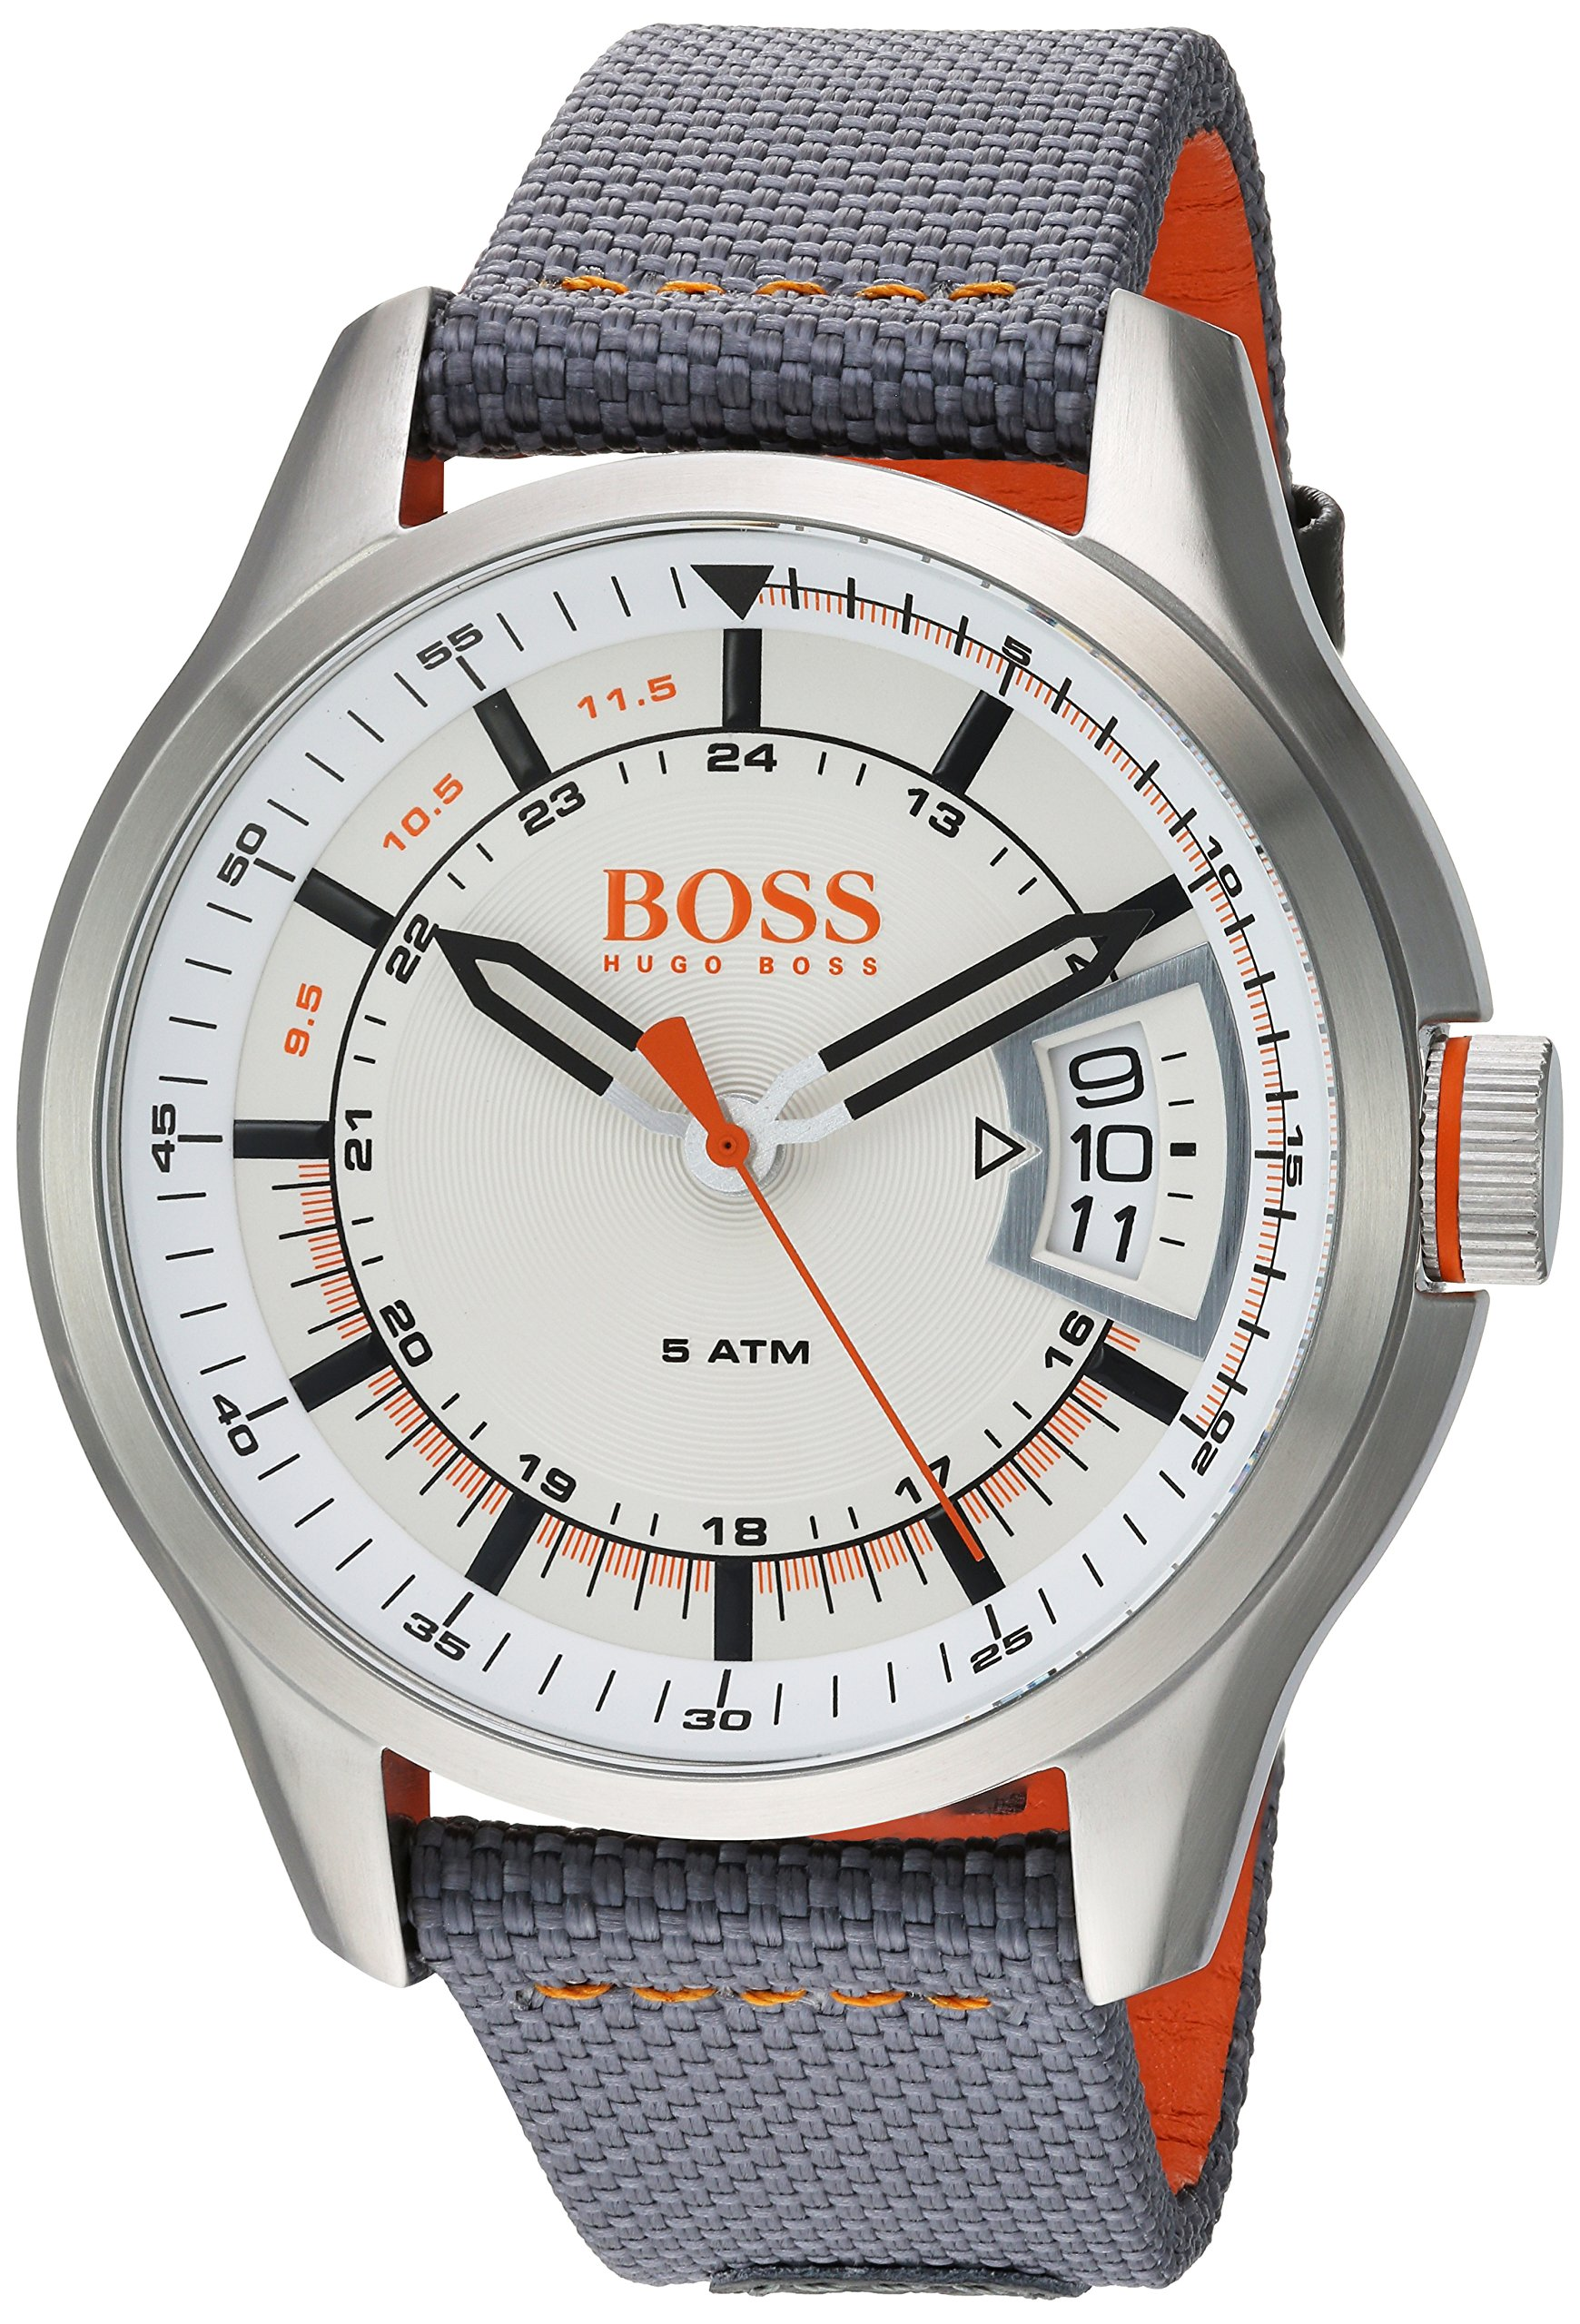 HUGO BOSS Men's Hong Kong Sport Stainless Steel Quartz Watch with Nylon Strap, Grey, 22 (Model: 1550015) by Hugo Boss